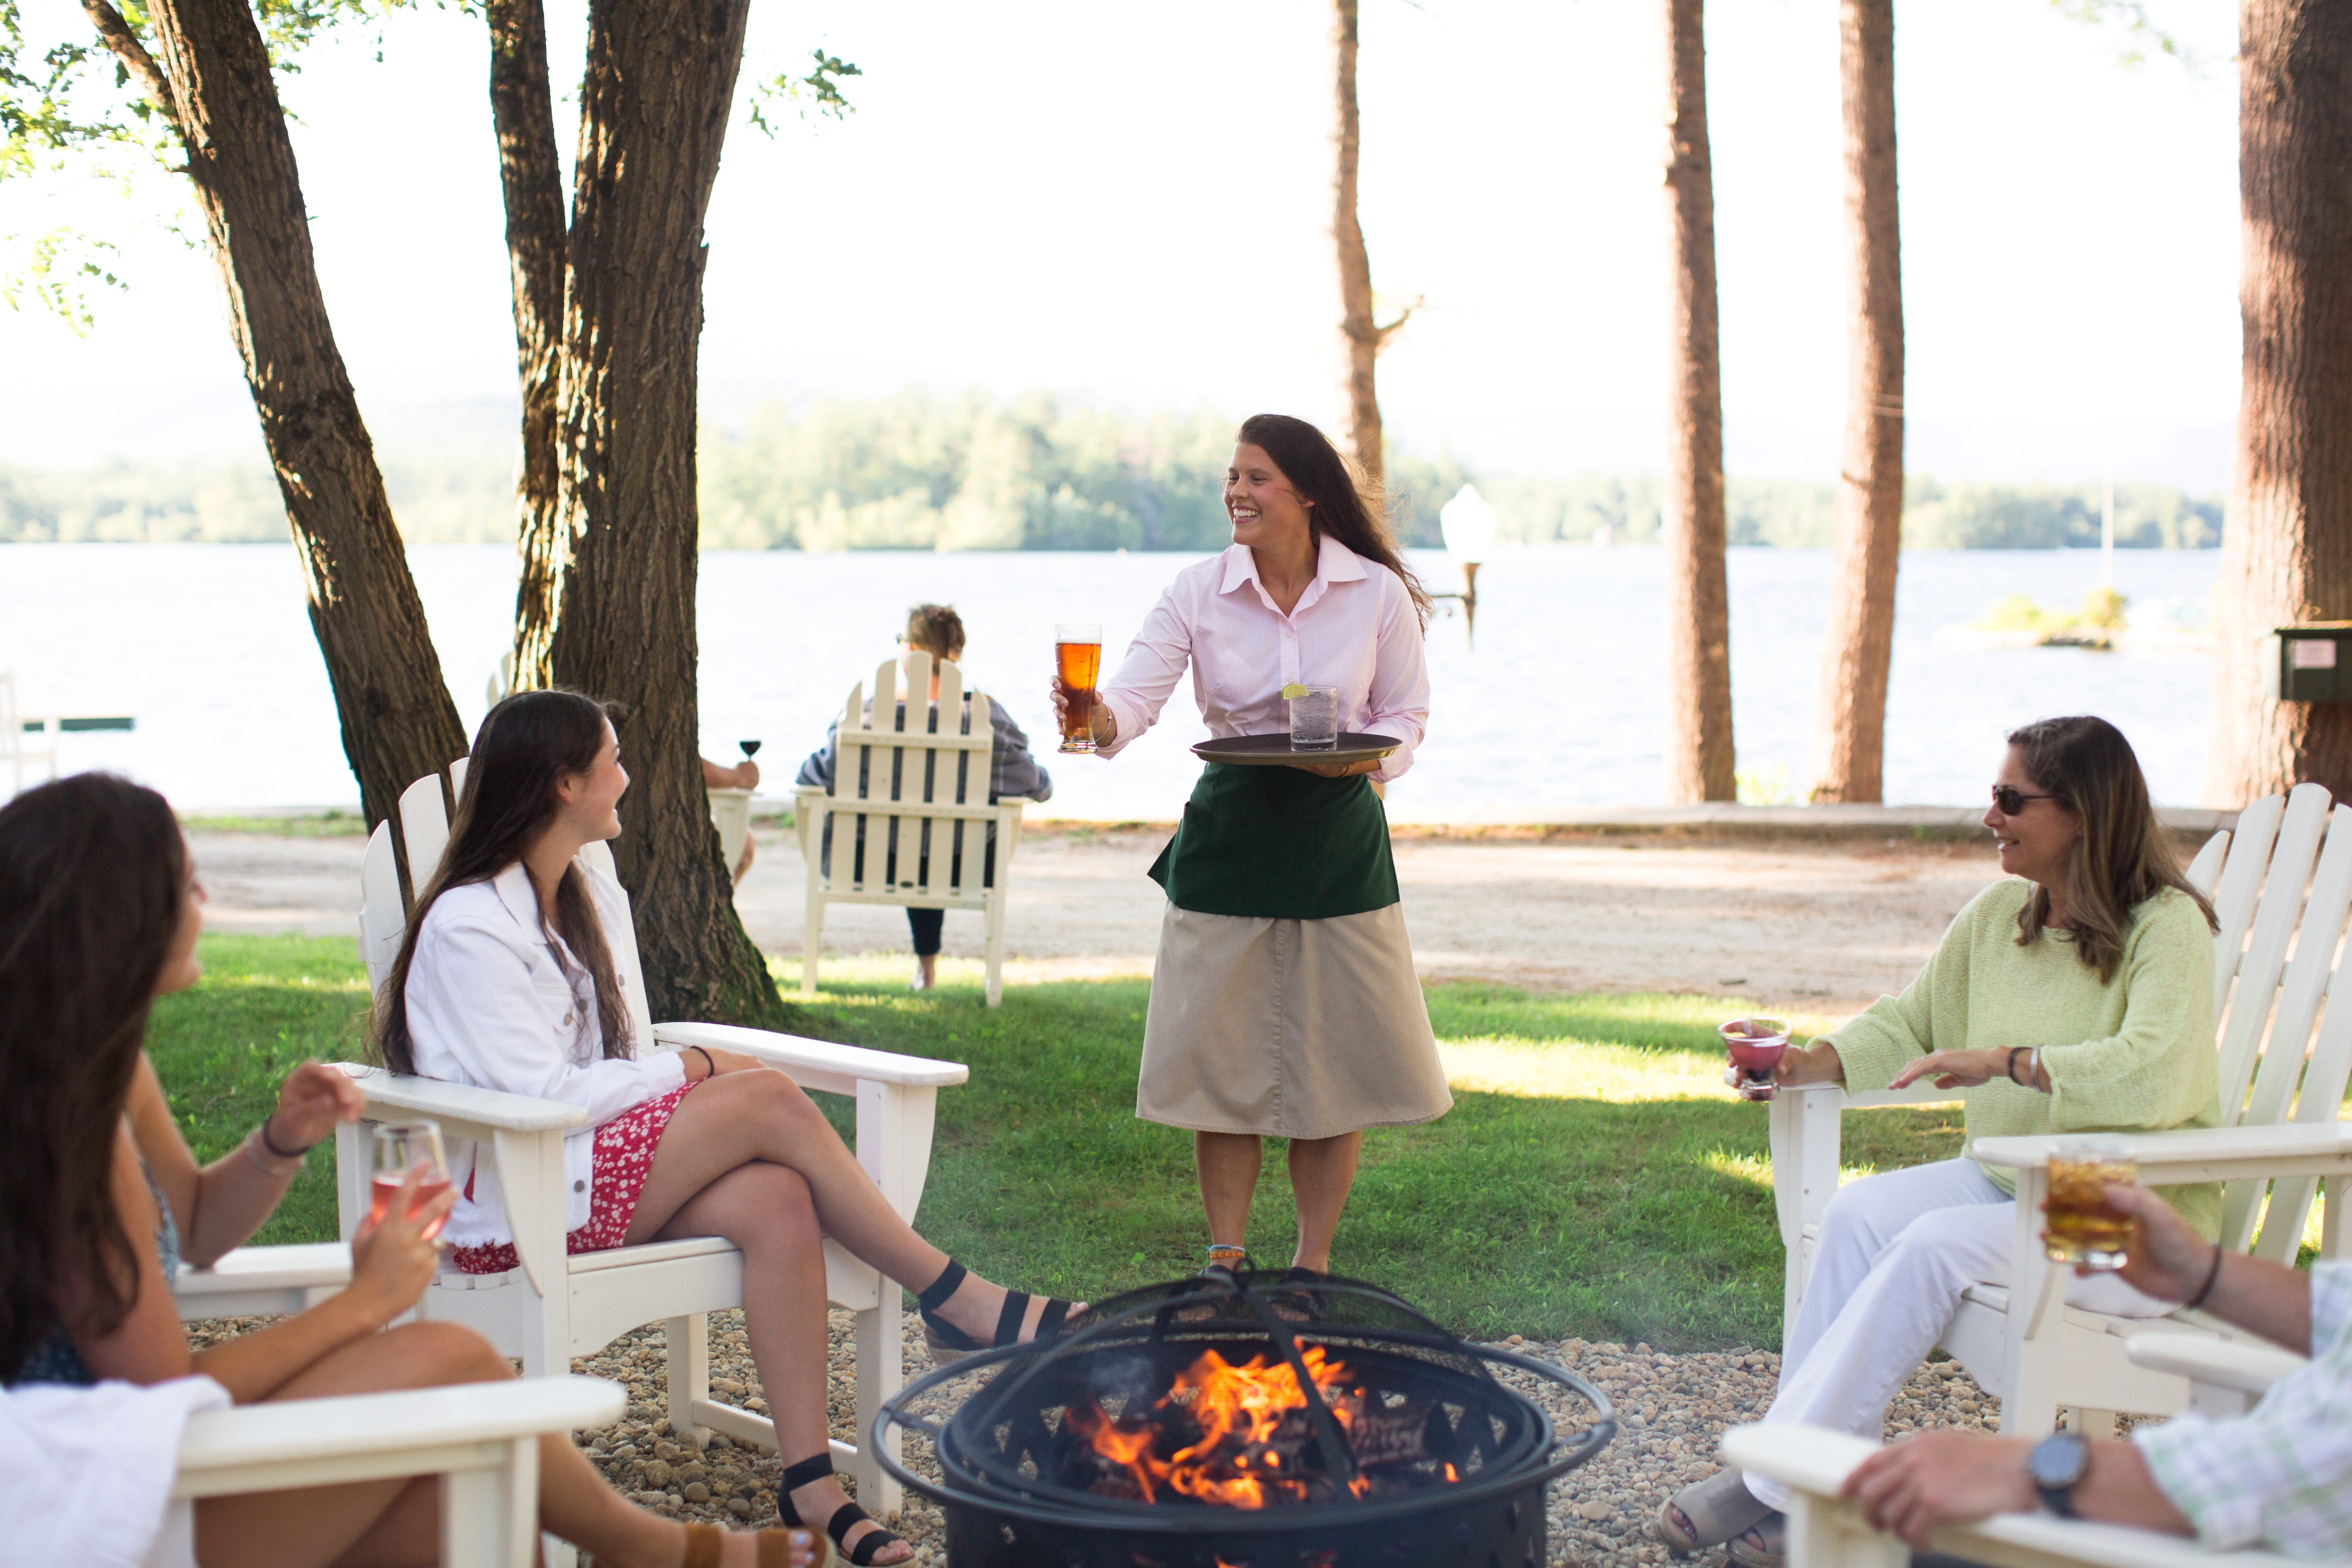 Family sitting around fire pit being served drinks